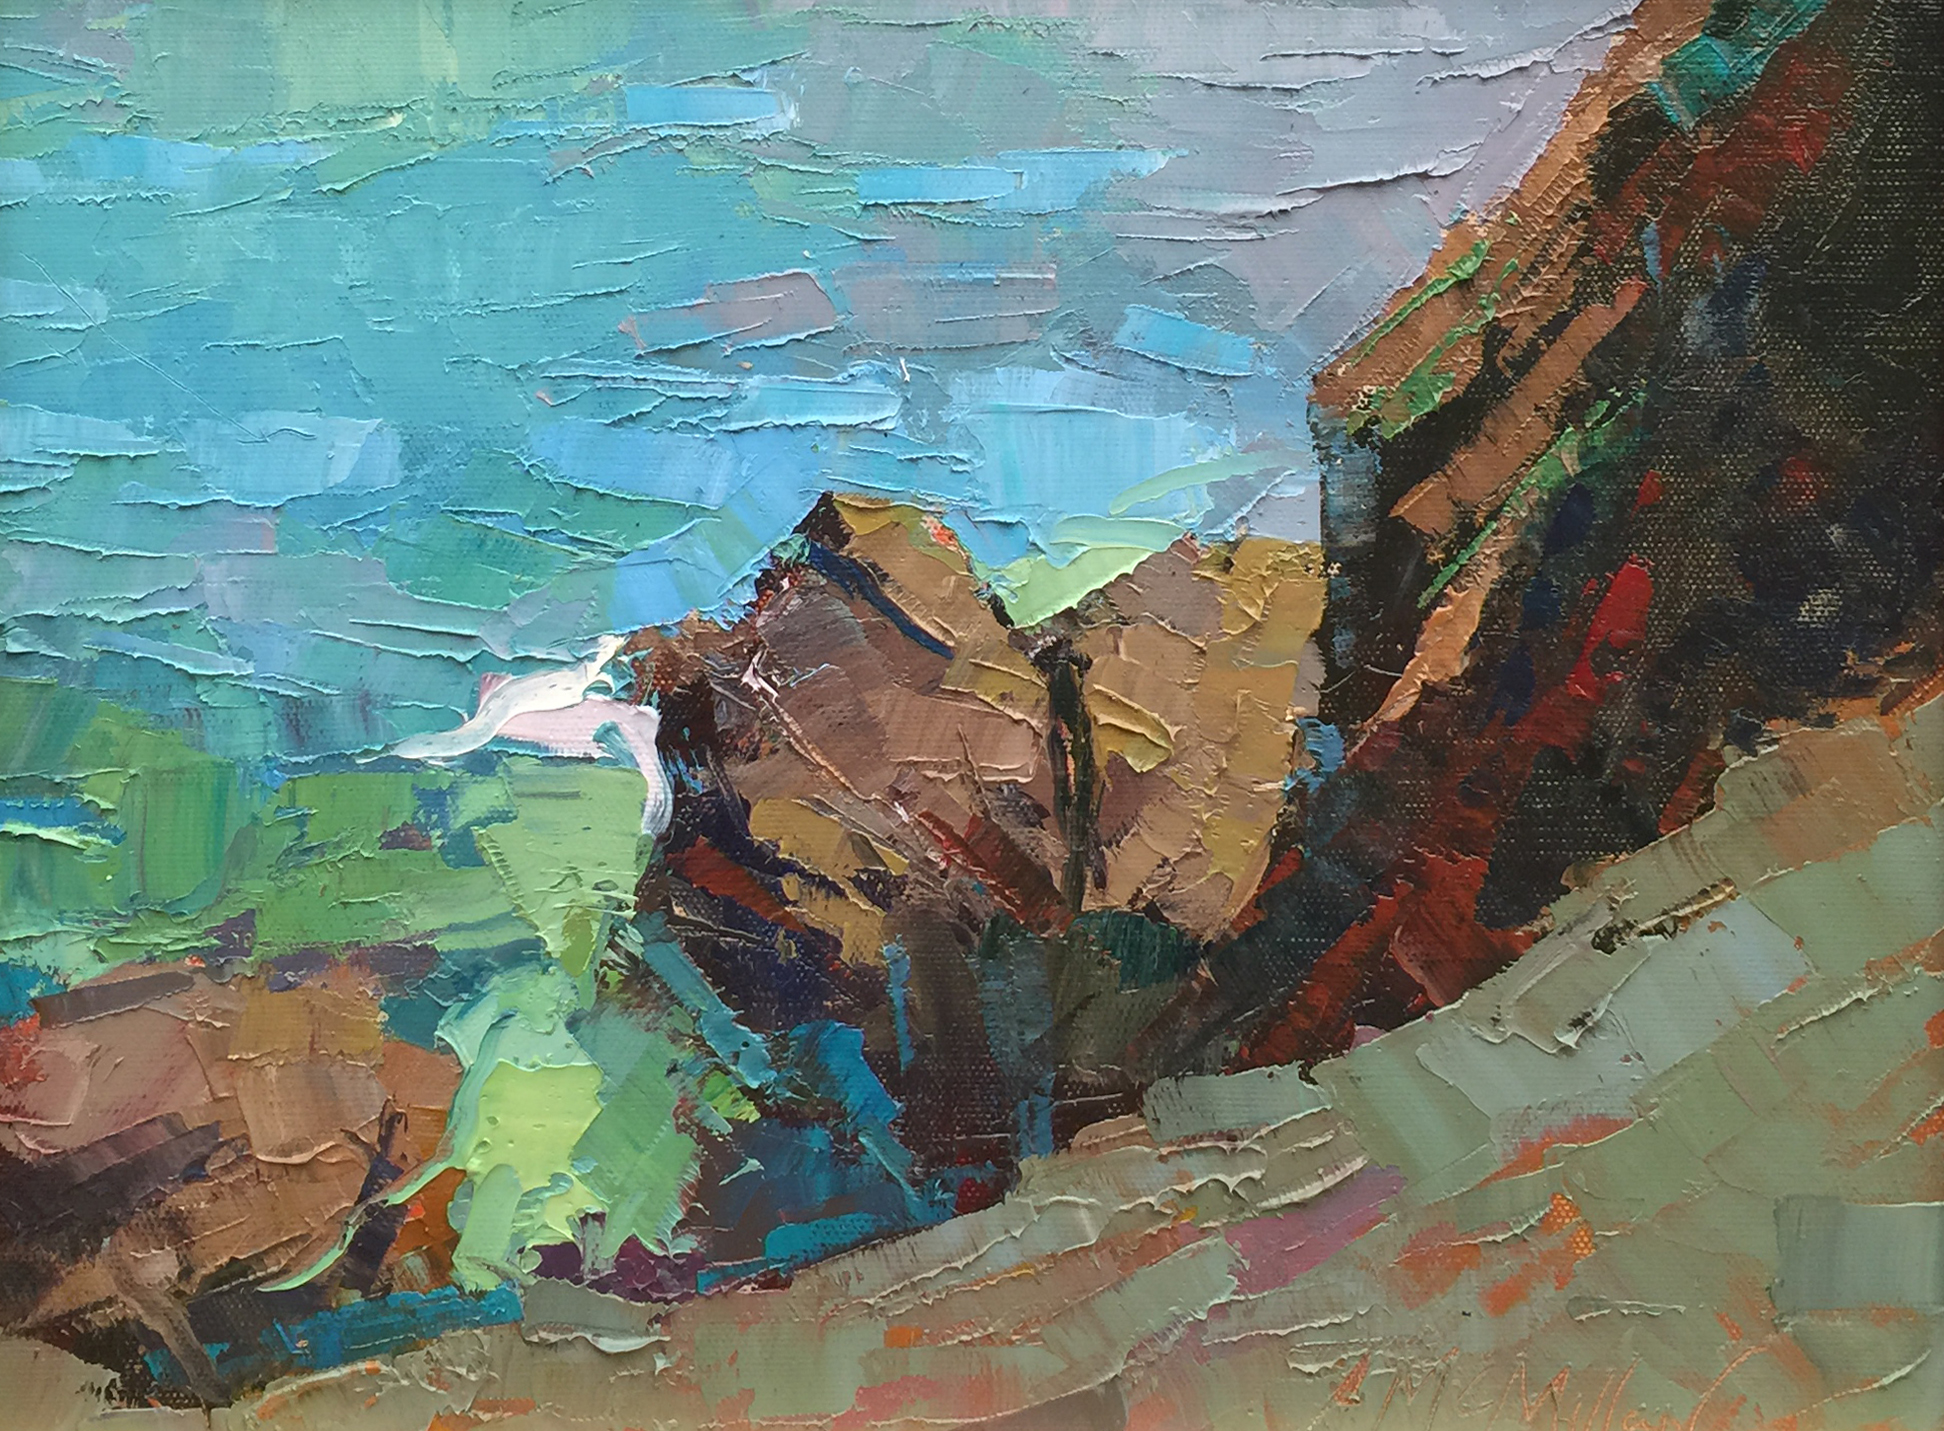 McMillan Mendocino Water Colors 11 c 14 inches oil 2015 no frame.jpg